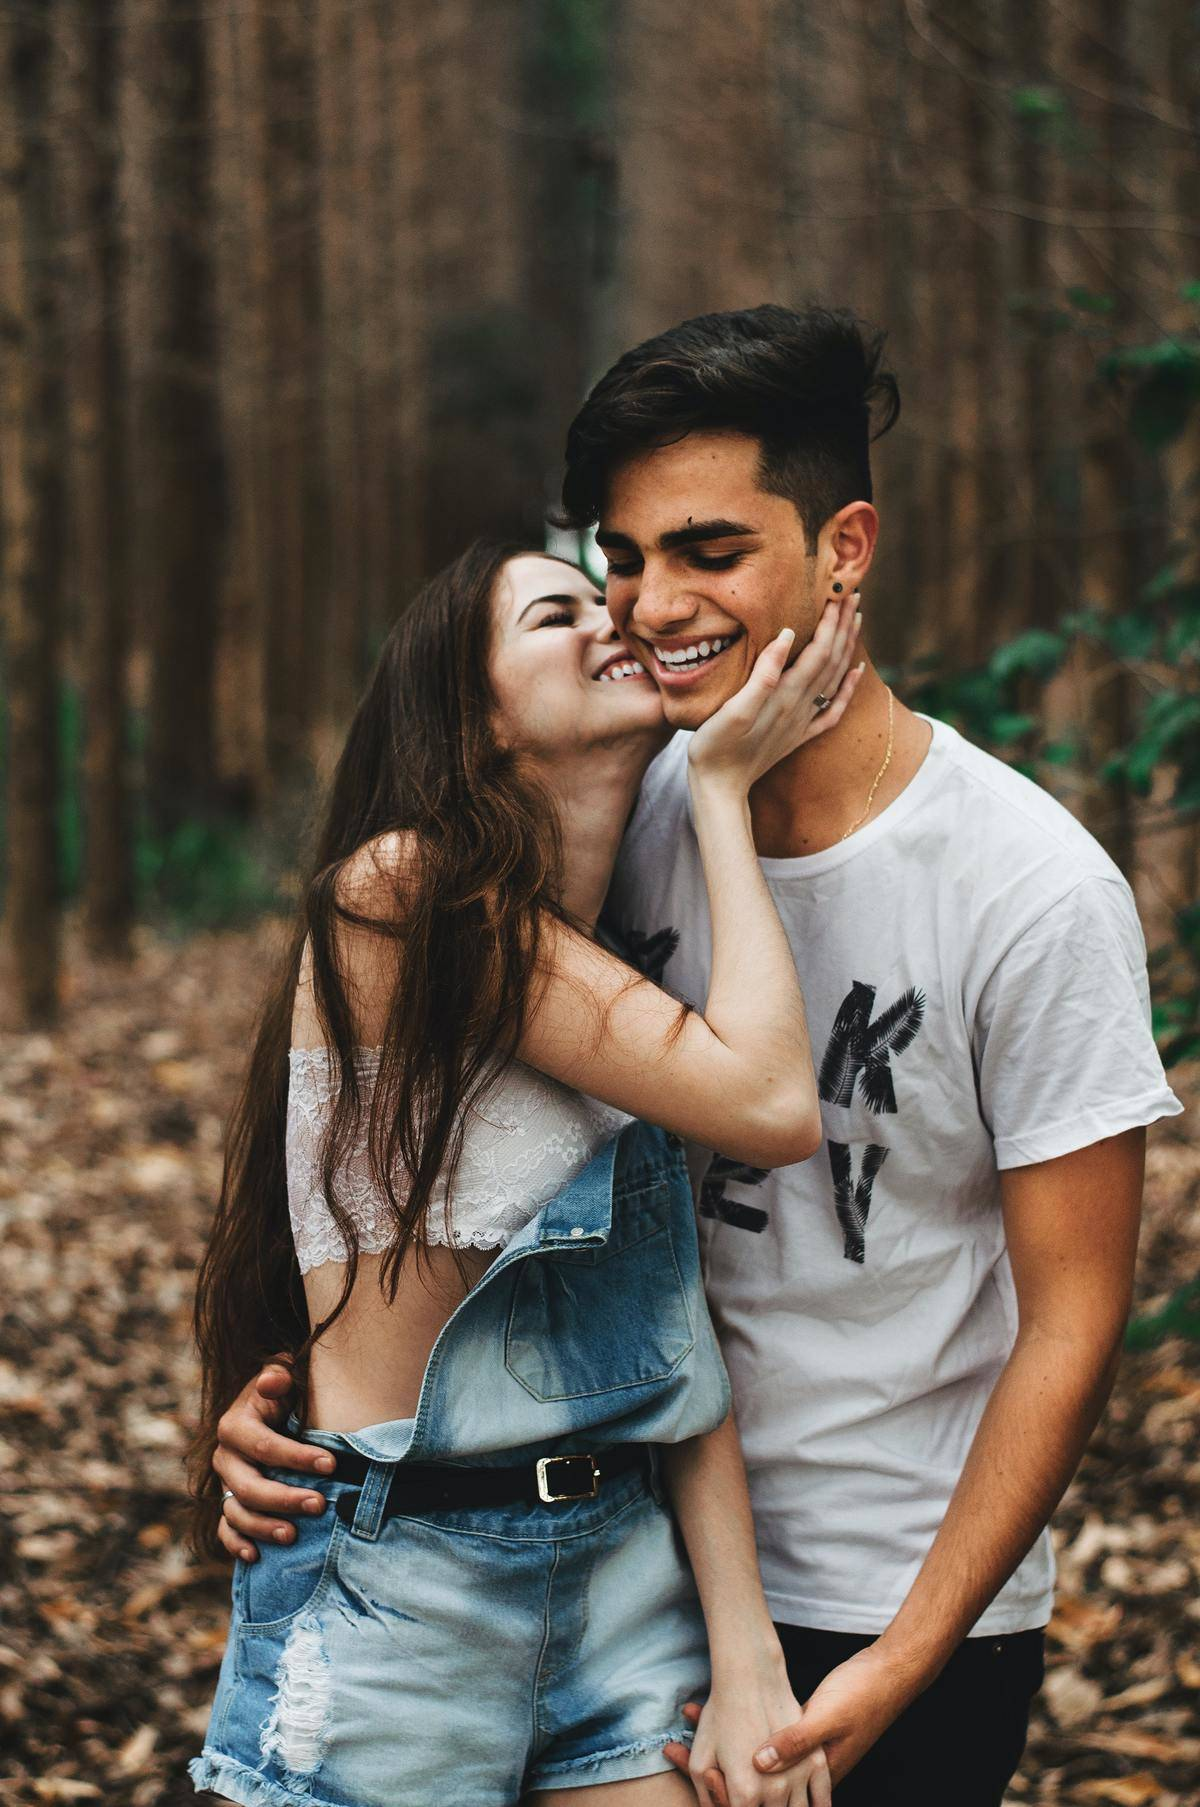 a couple walking on a trail laughing together while she gives him a kiss on the cheek